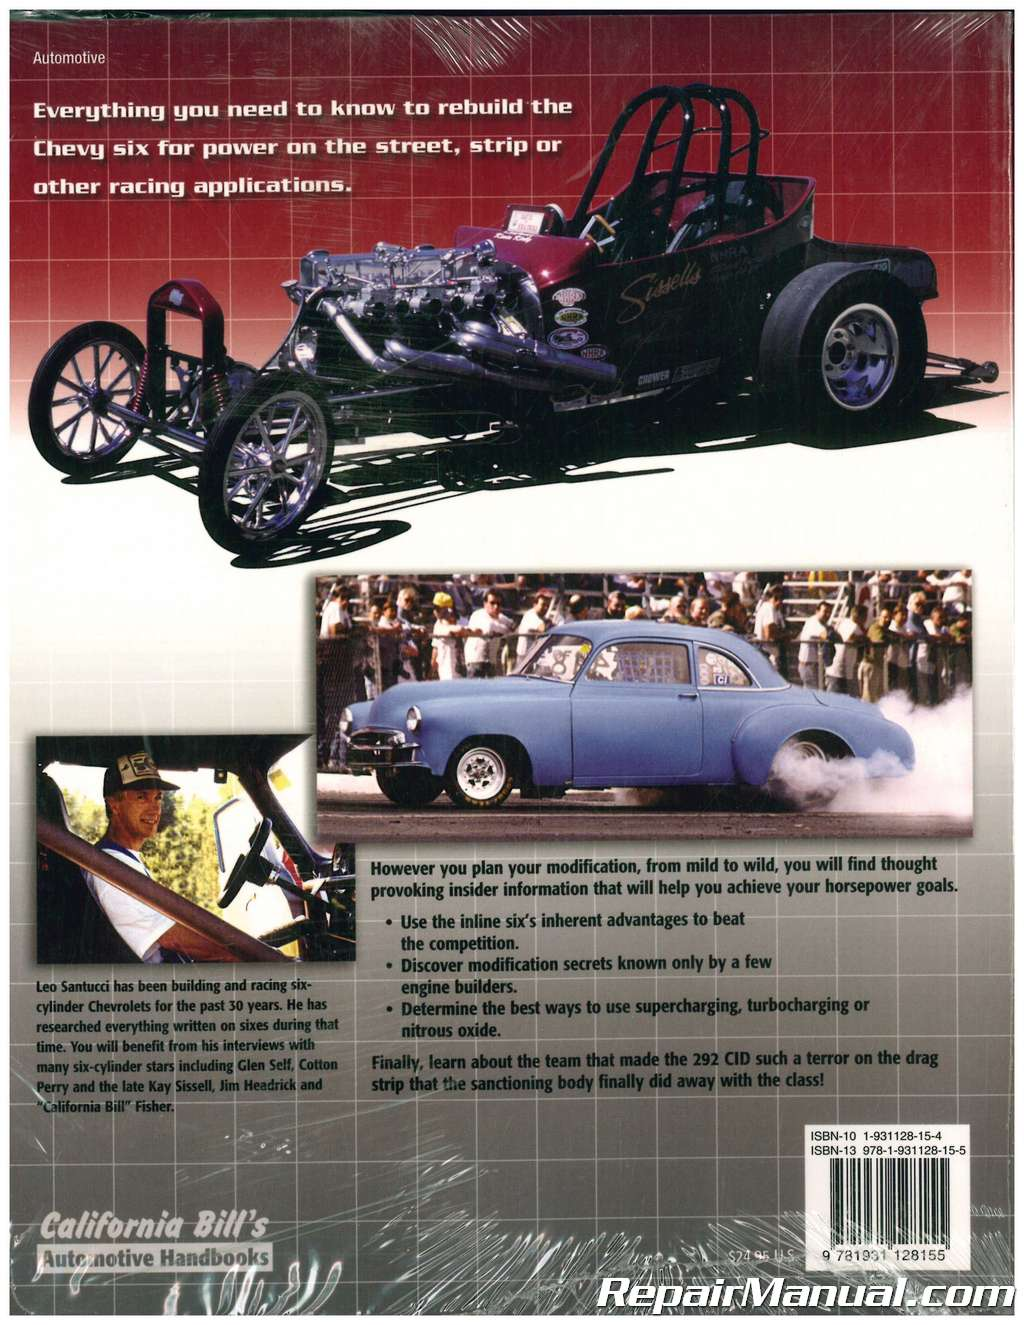 Chevrolet inline six-cylinder power manual. : target.